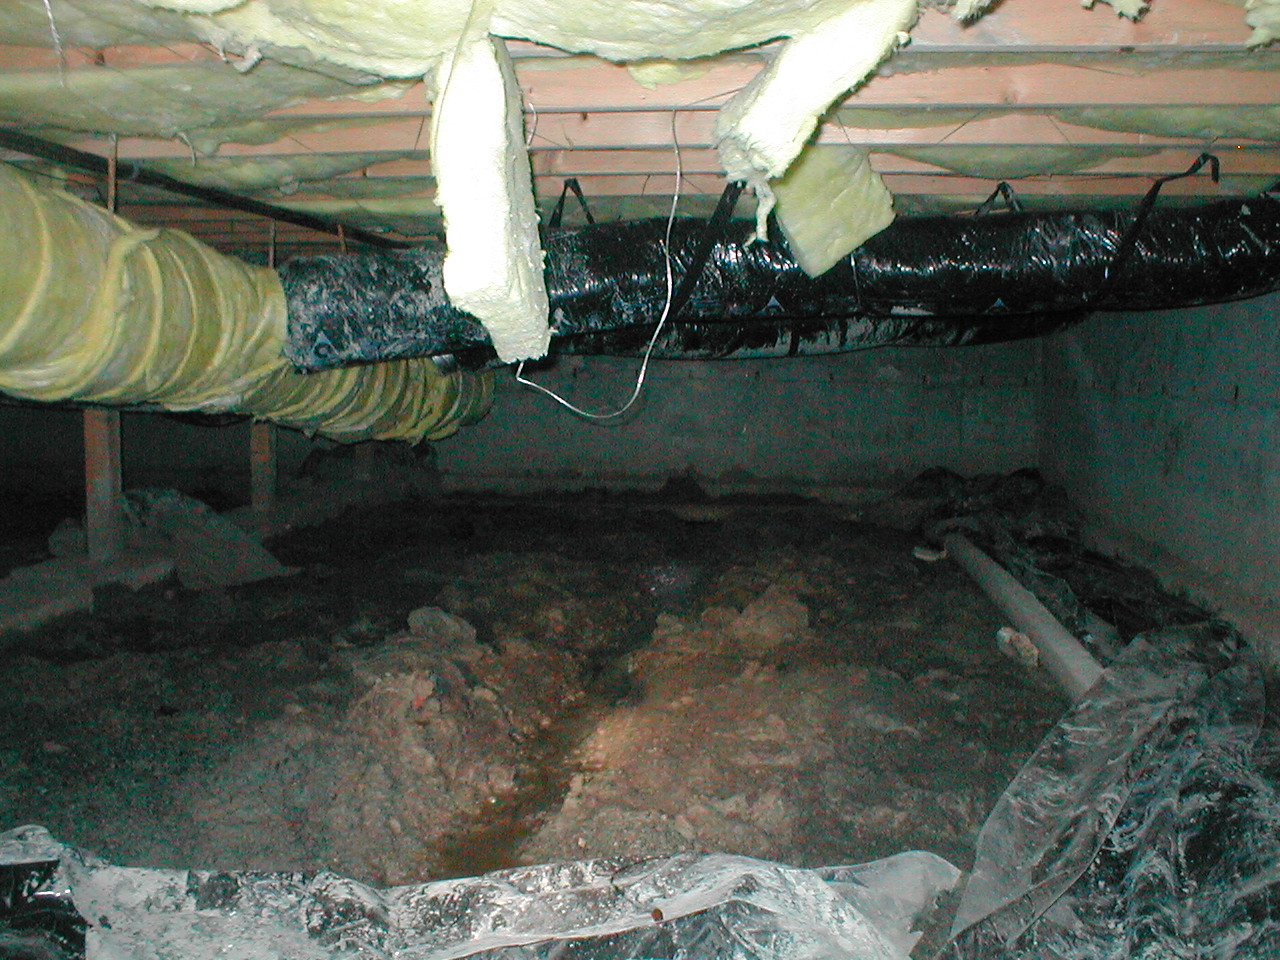 Crawl Space Inspections Pacific Crest Inspections